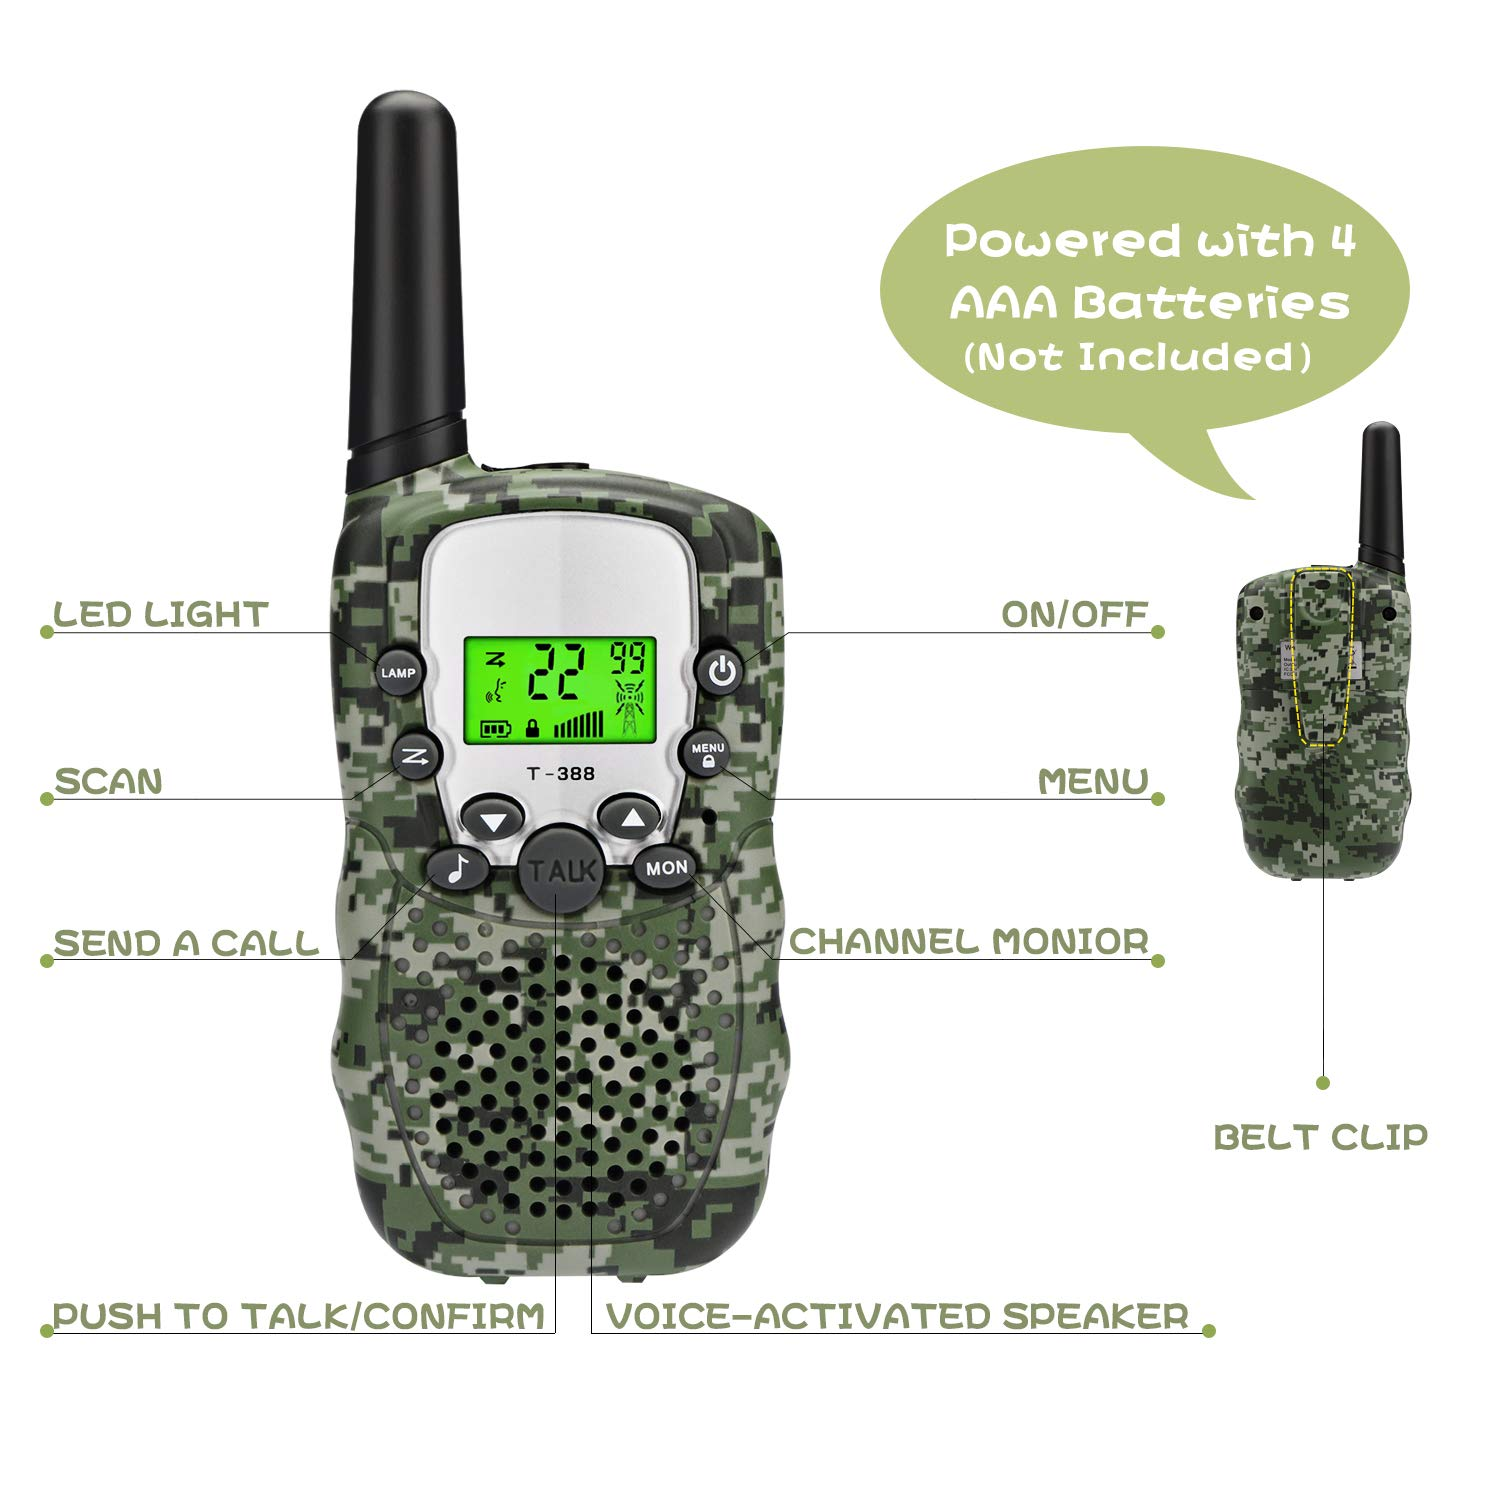 Zhenhao Walkie Talkies for Kids 3 Packs - 22 Channels Two Way Radio 3 Miles Long Range Outdoor Toys with 3 Earpieces and 3 Lanyards for Boys Girls by Zhenhao (Image #6)